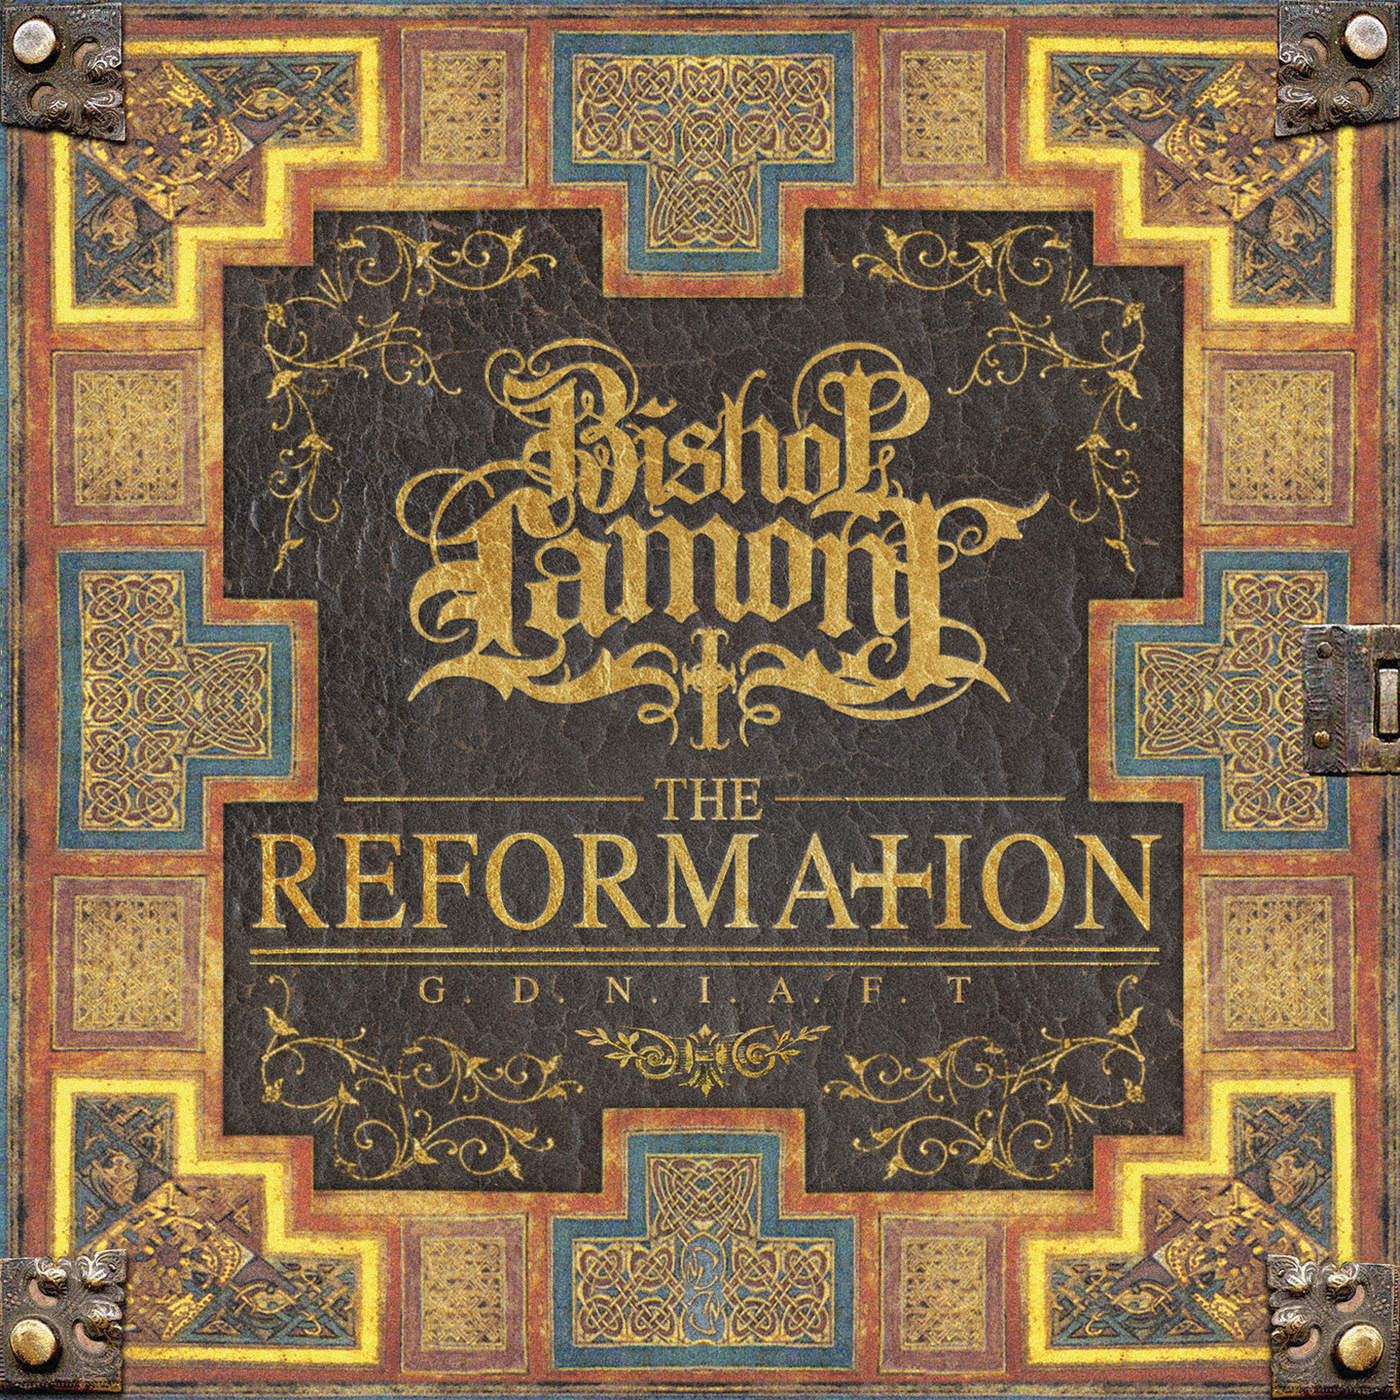 Bishop Lamont - The Reformation: G.D.N.I.A.F.T Cover